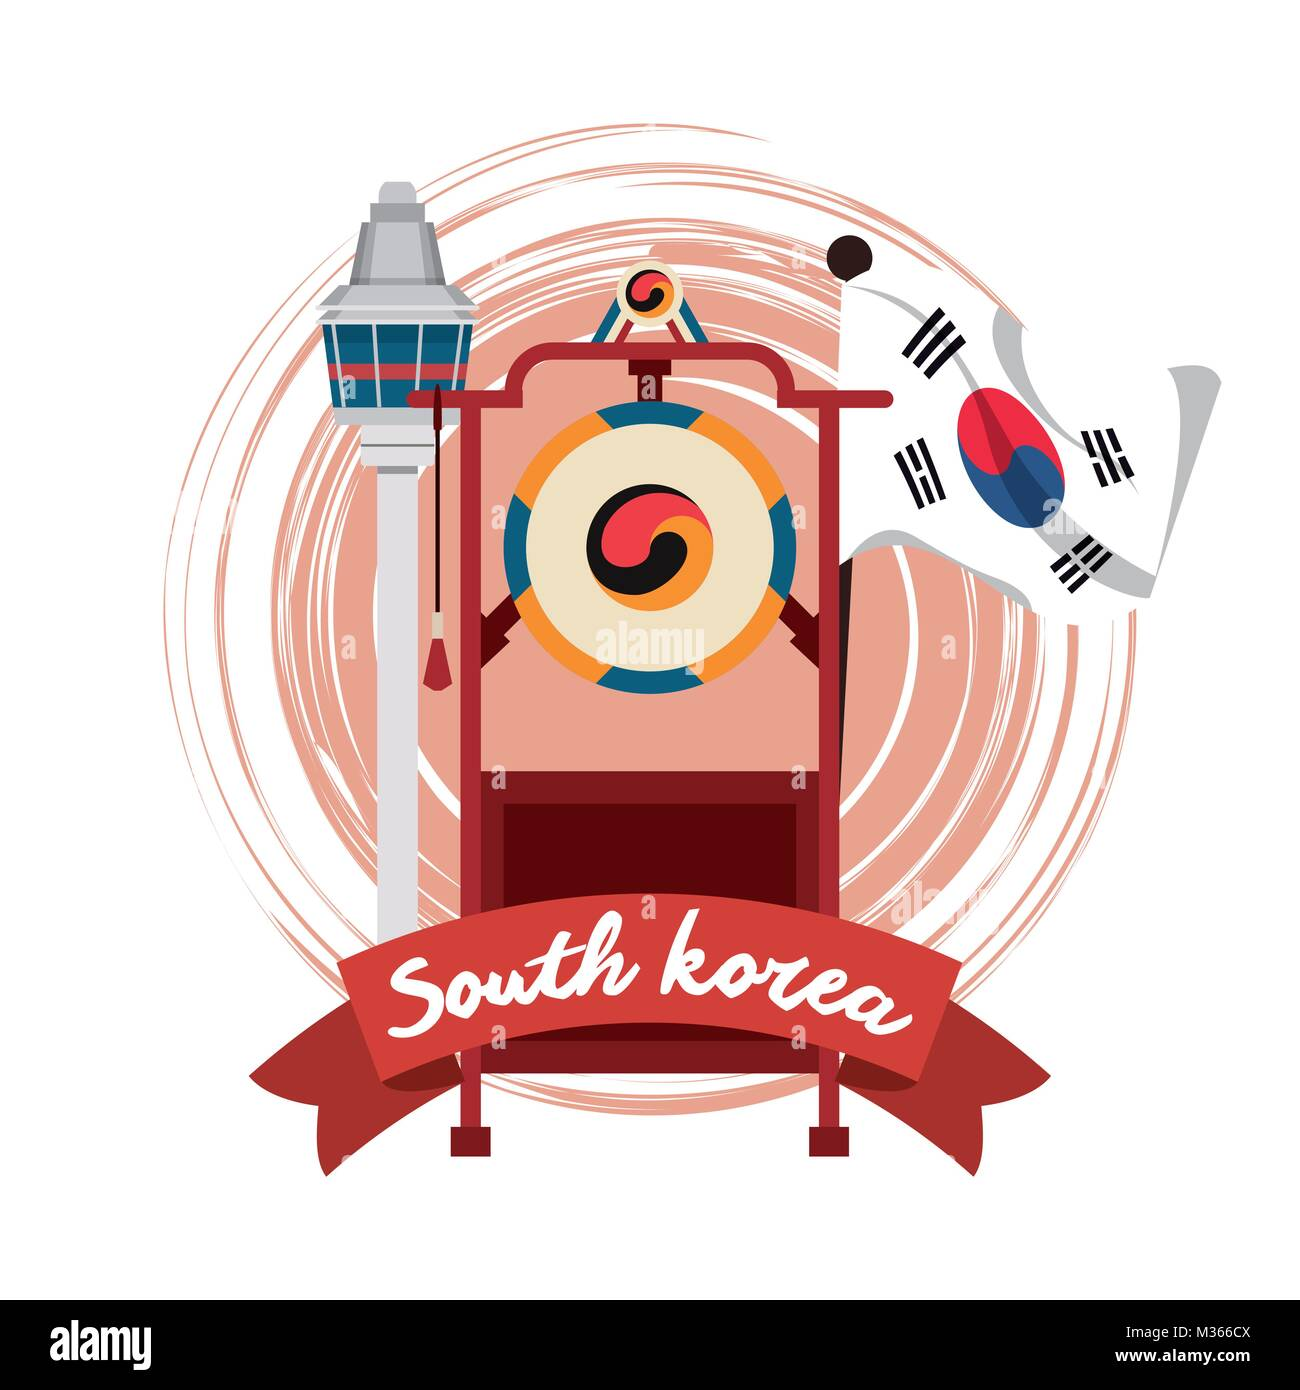 South korean culture stock vector images alamy south korea culture stock vector biocorpaavc Image collections